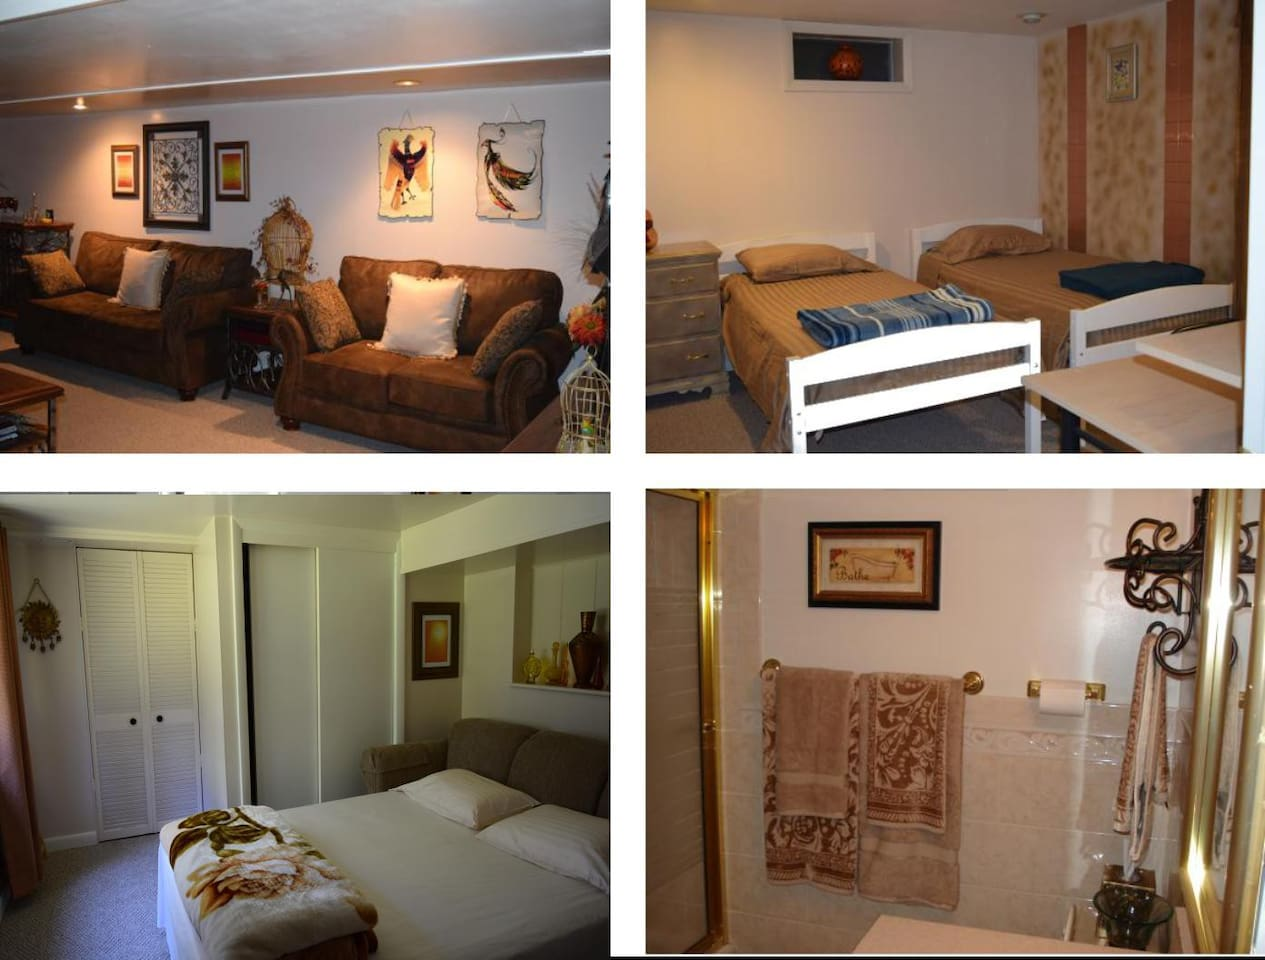 Large, private space. 4 rooms plus laundry room